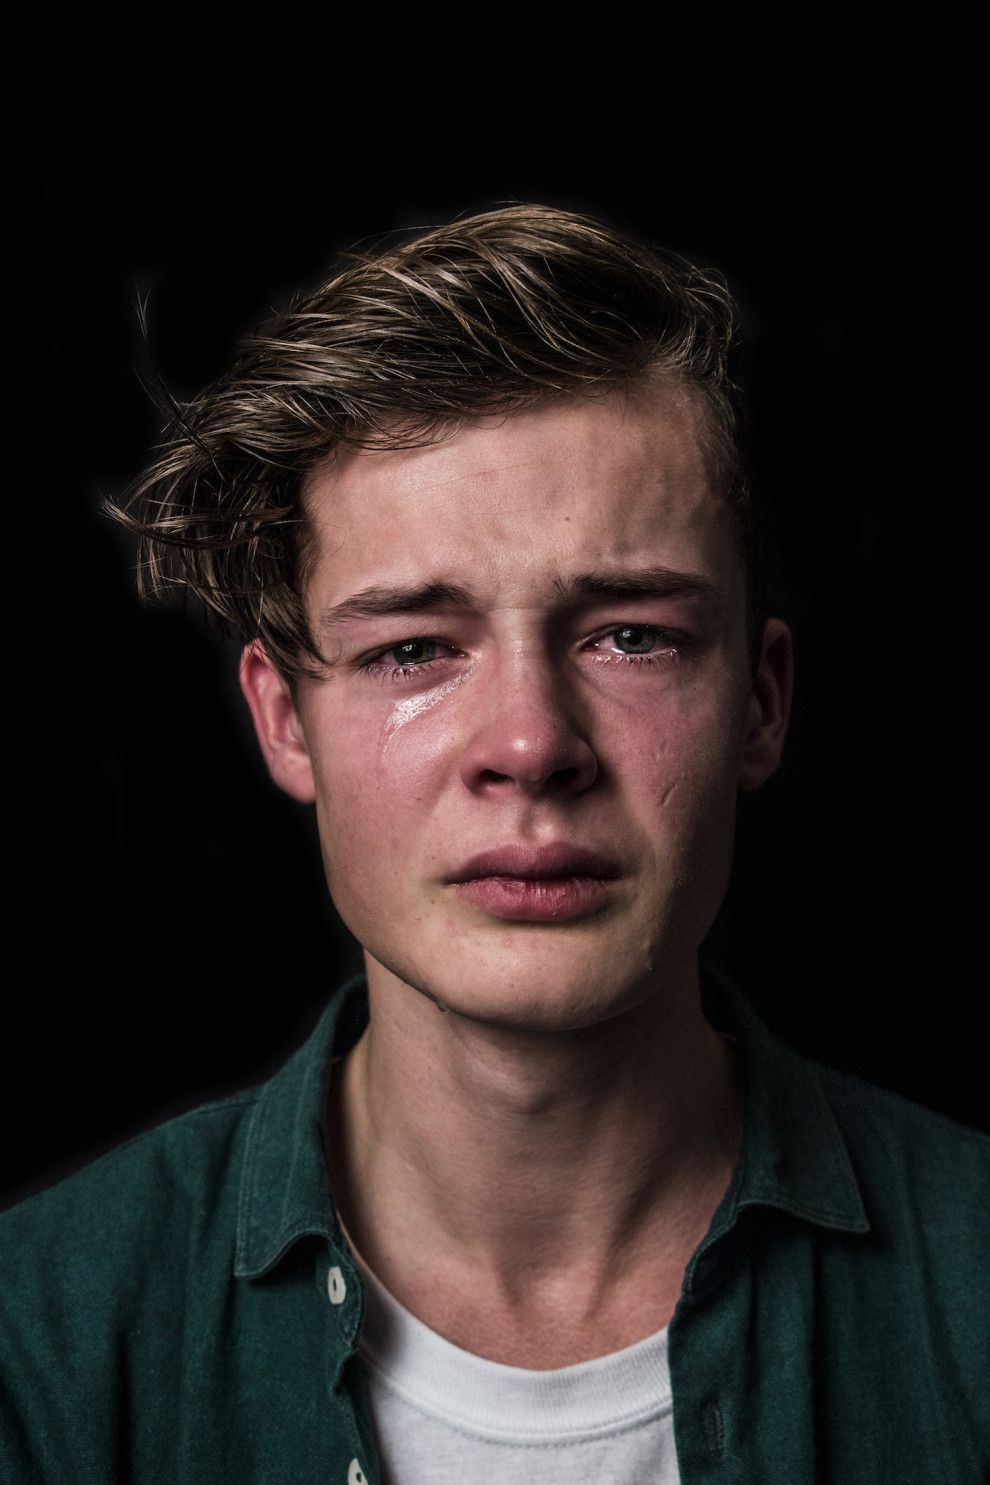 18 Photos Of Men Crying That Challenge Gender Norms 324ca206d5c5